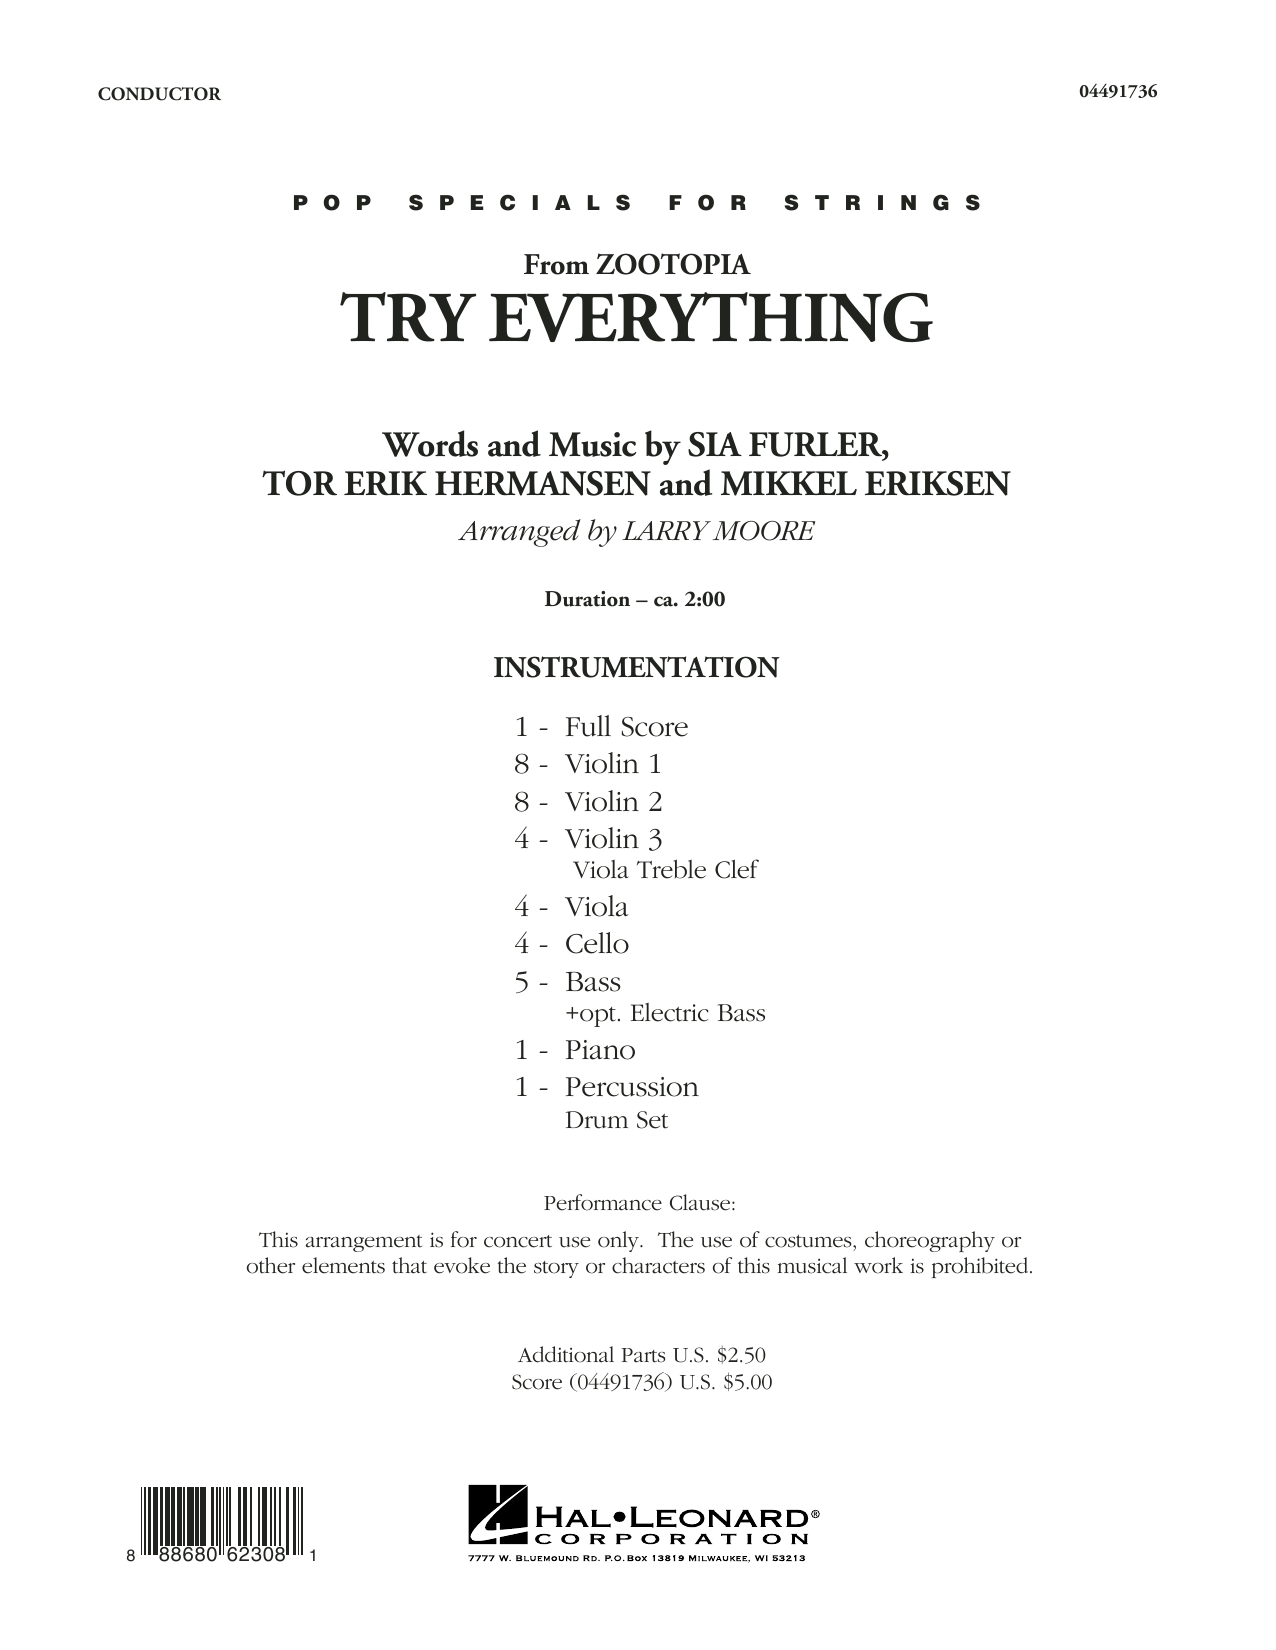 Try Everything (from Zootopia) (COMPLETE) sheet music for orchestra by Tor Erik Hermansen, Larry Moore, Mikkel Eriksen, Shakira and Sia Furler. Score Image Preview.